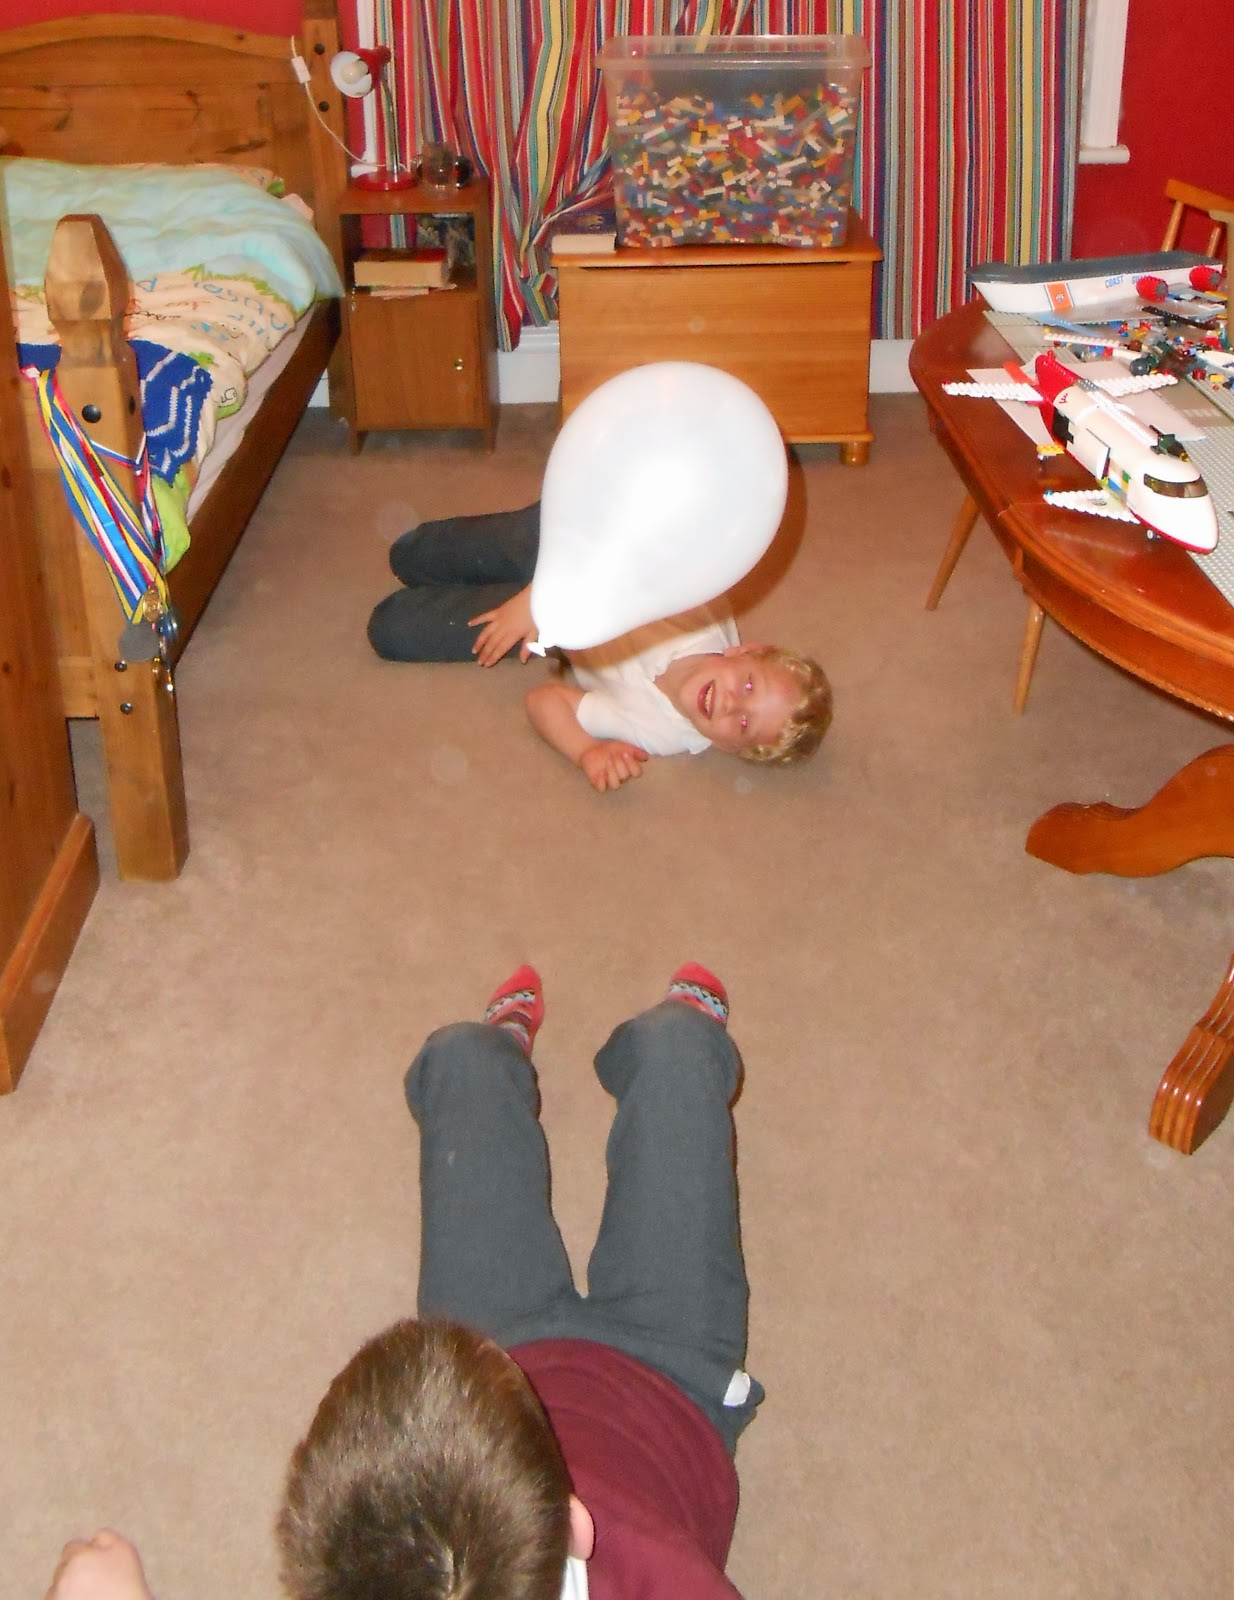 schoolboys on bedroom floorlego table and medals on bedpost